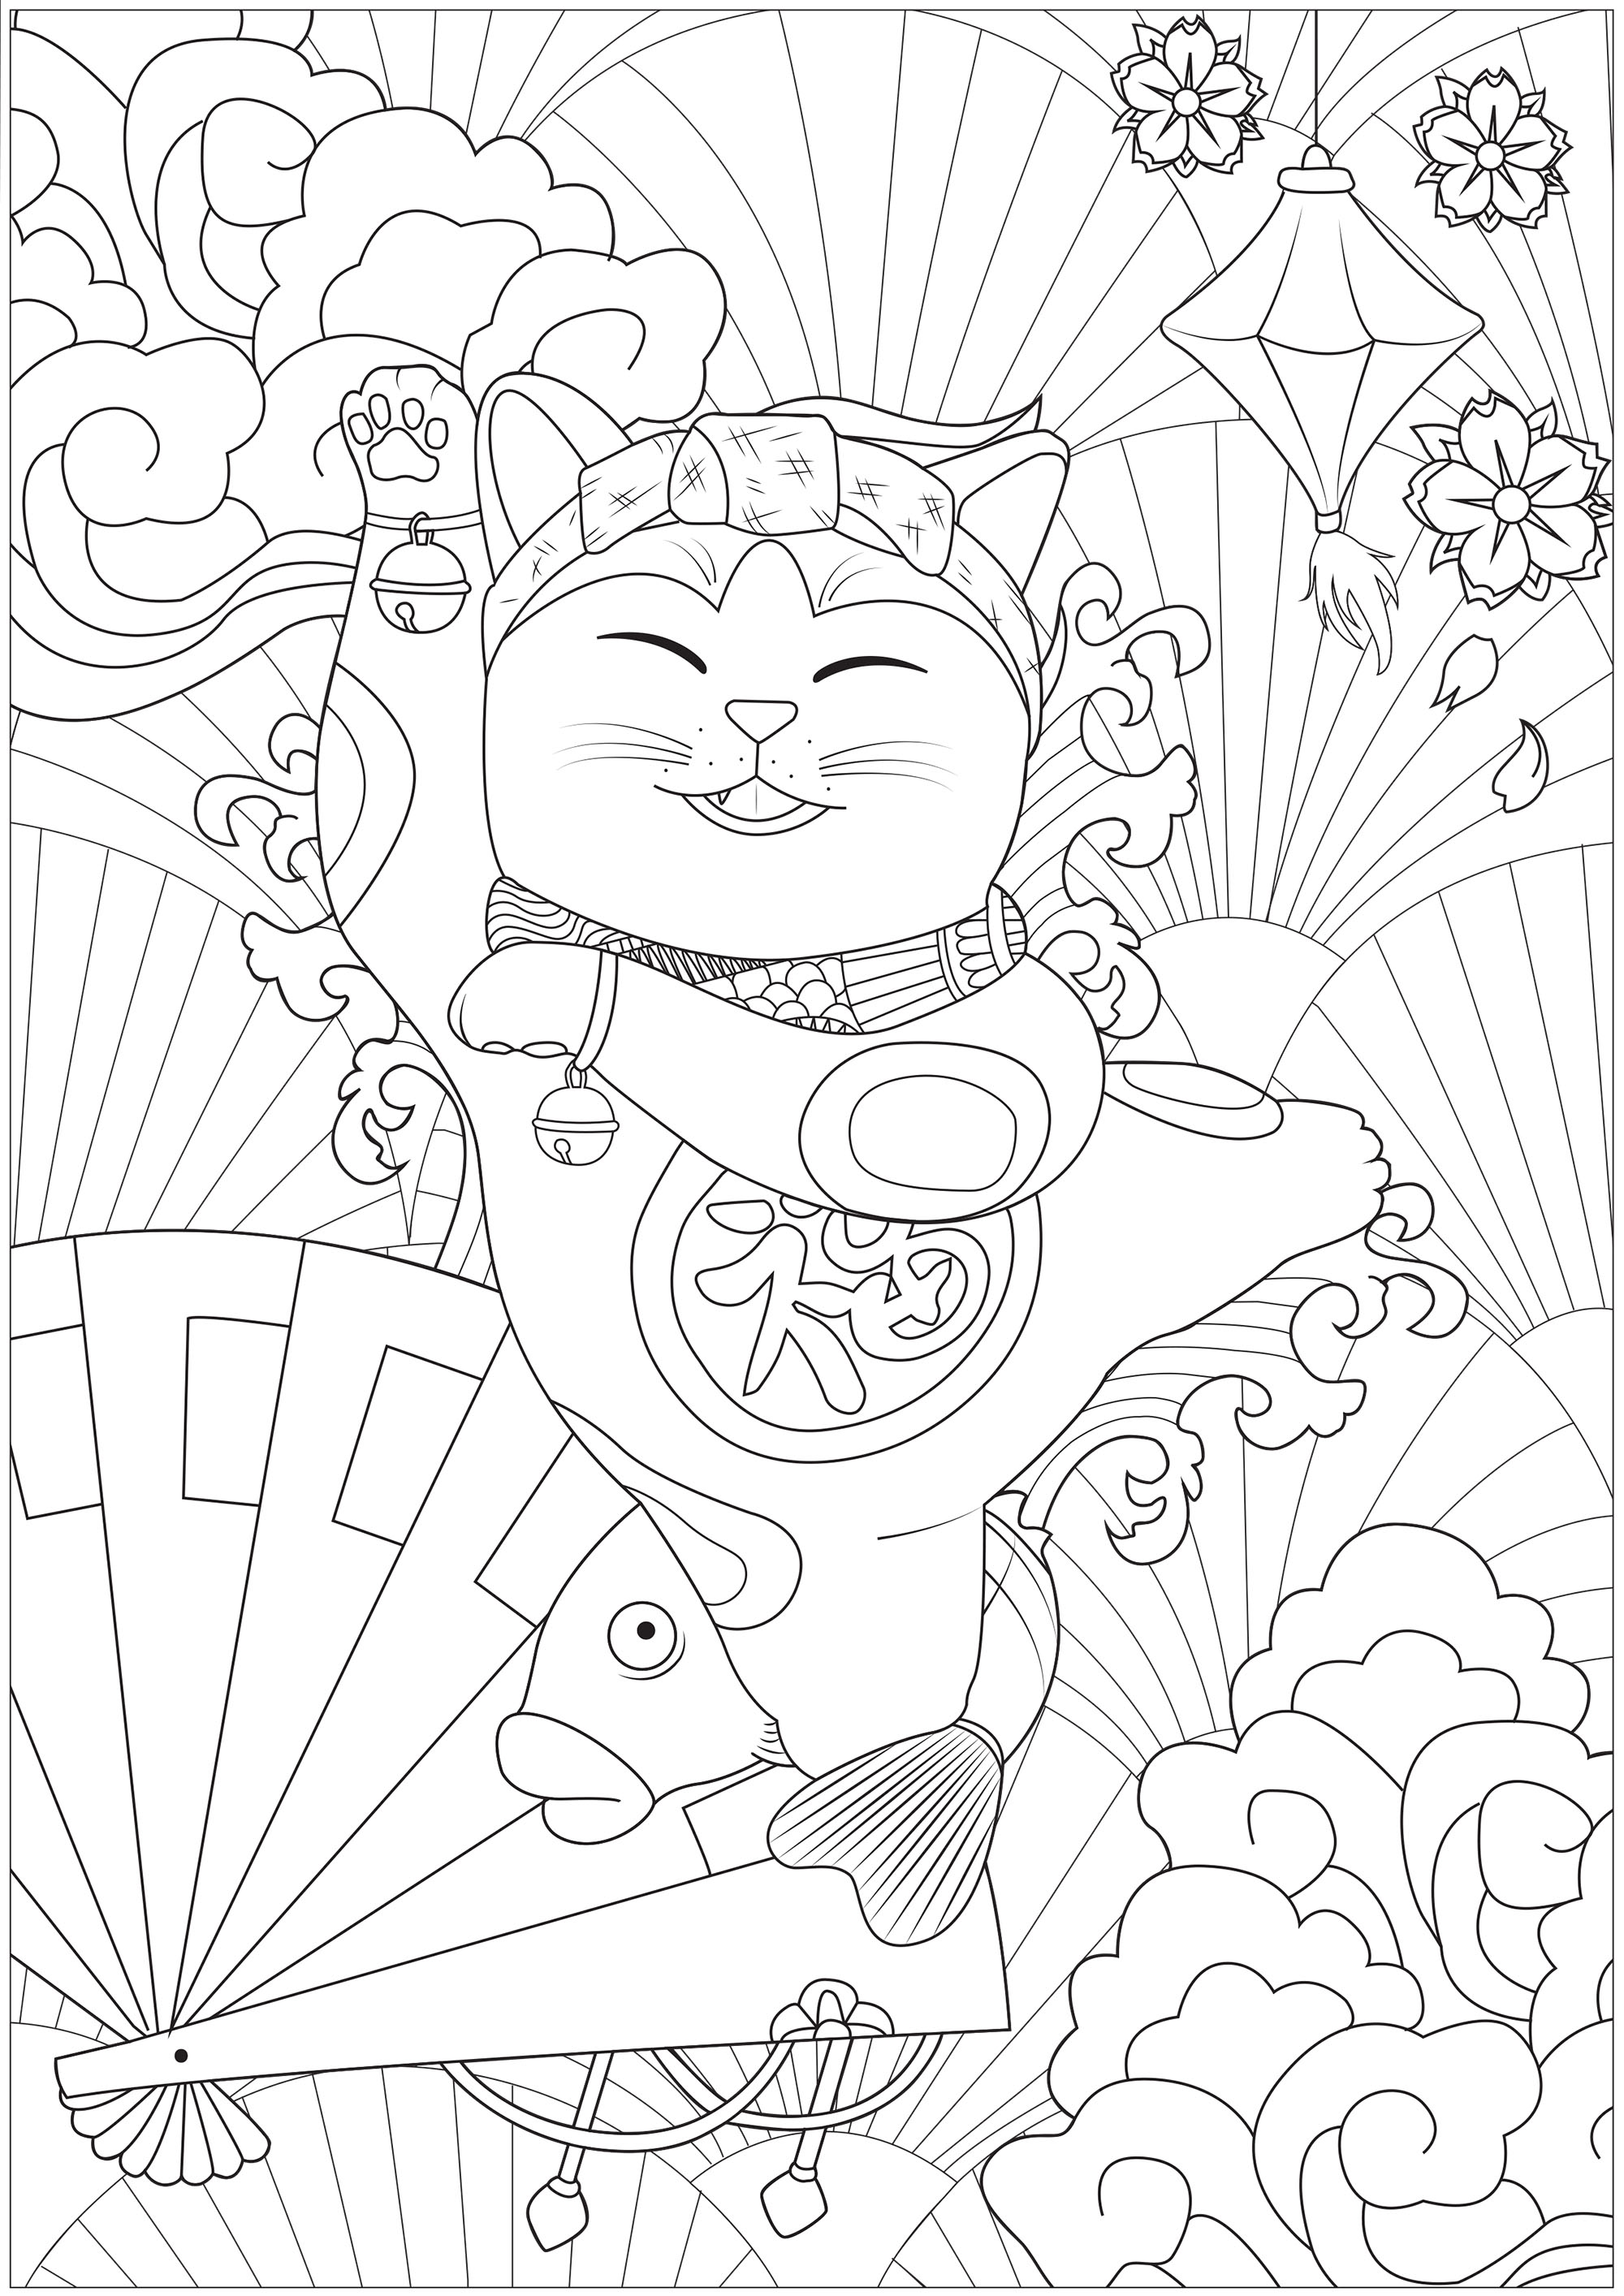 Cute Anime Boy and Girl Coloring Page - ColoringBay | 2828x2000